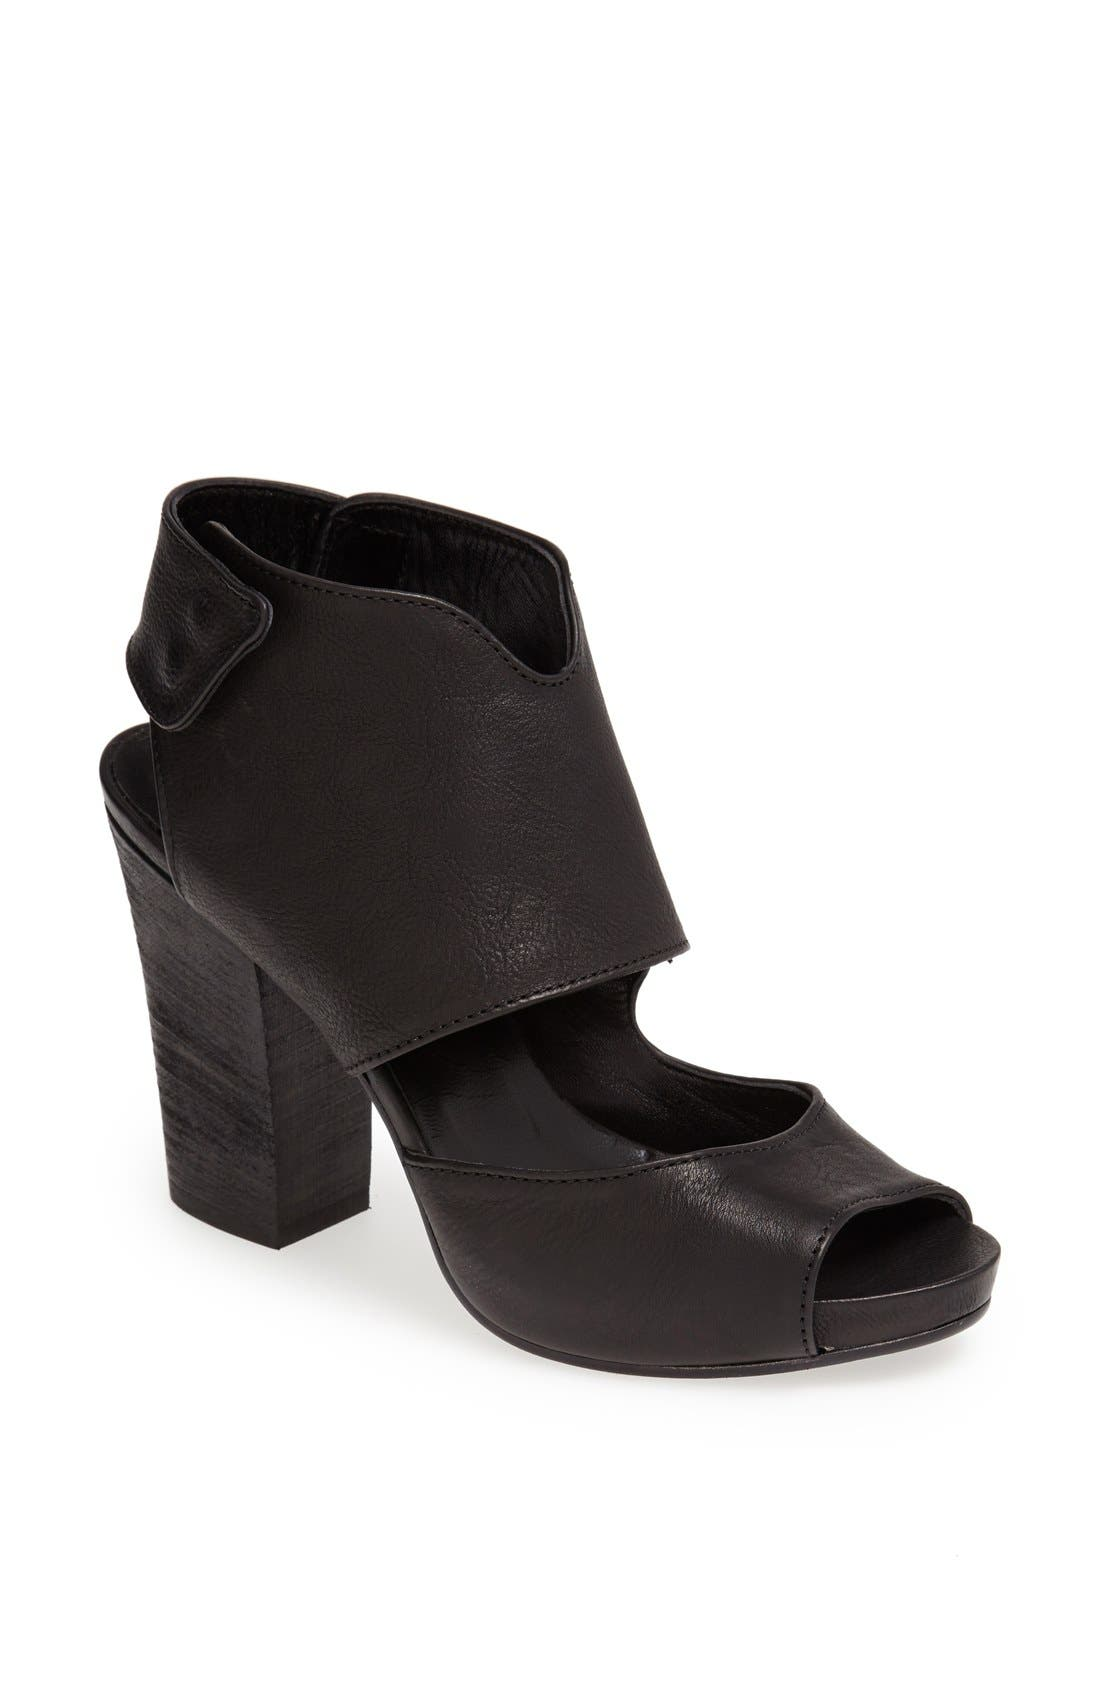 Main Image - Latitude Femme Stacked Heel Leather Sandal